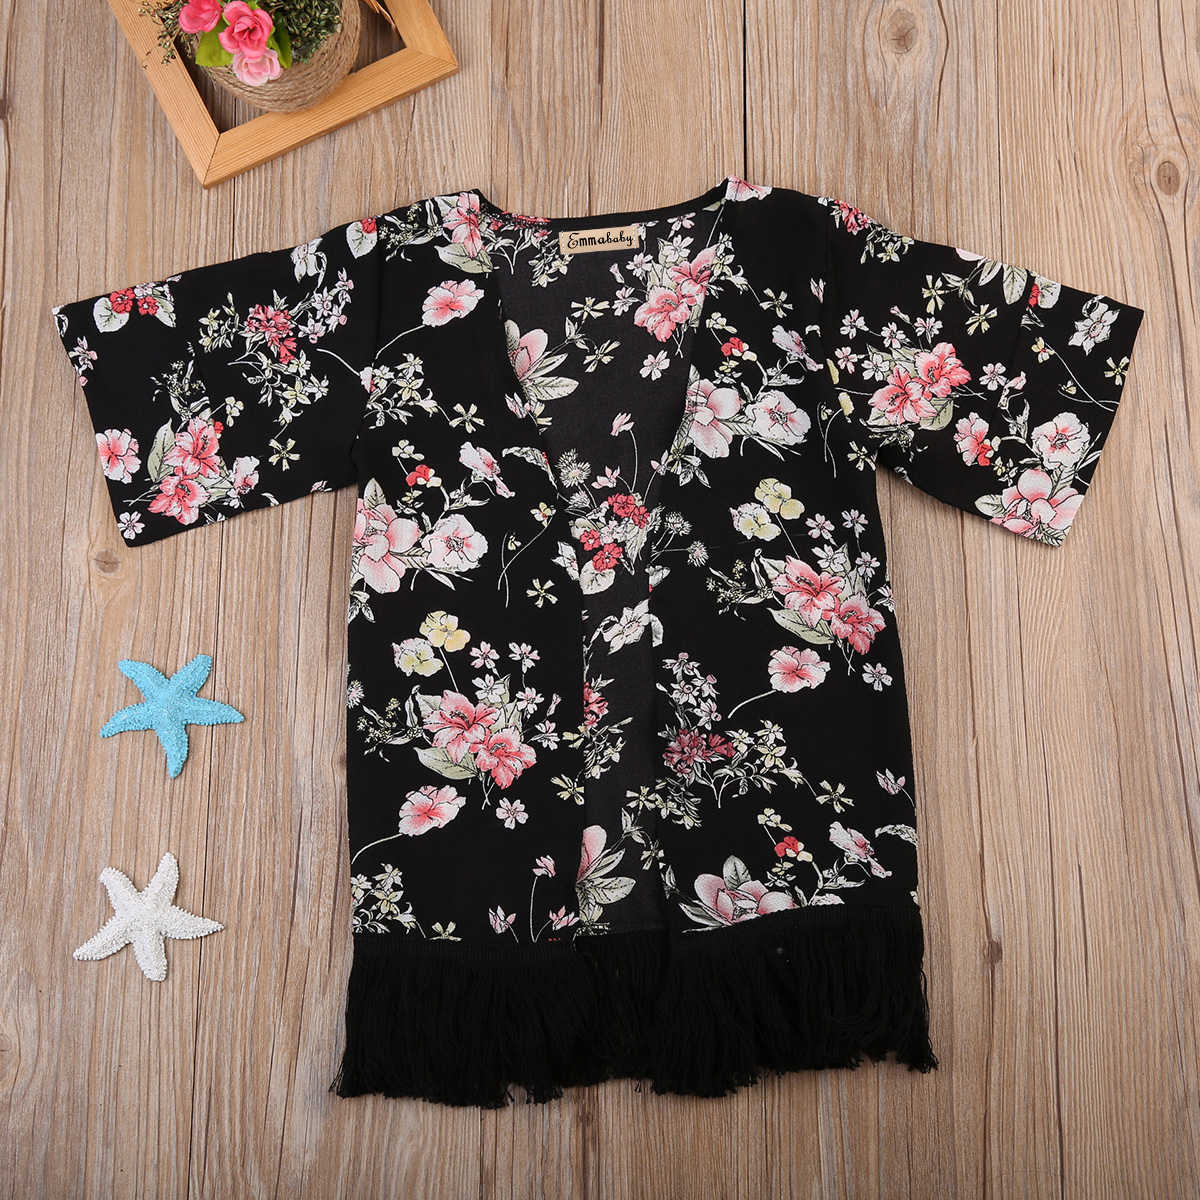 92278e89e Detail Feedback Questions about US Stock Kids Baby Girls Floral ...